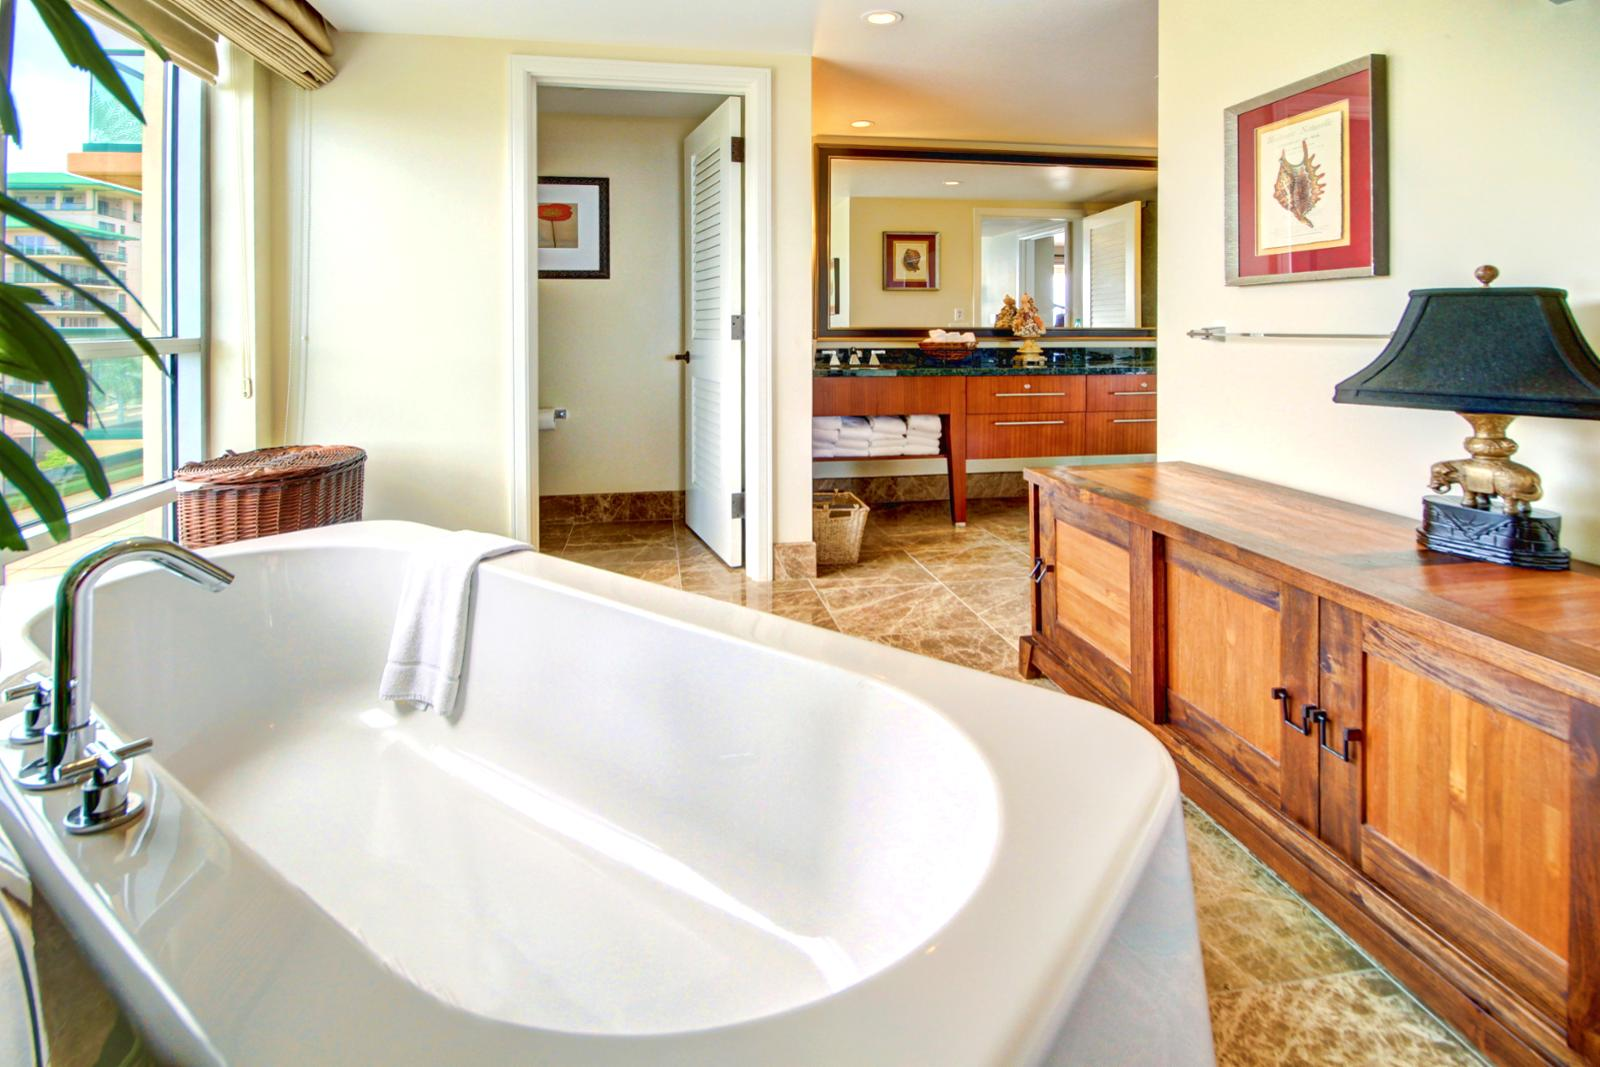 Large guest bathroom with soaking tub to relax in.